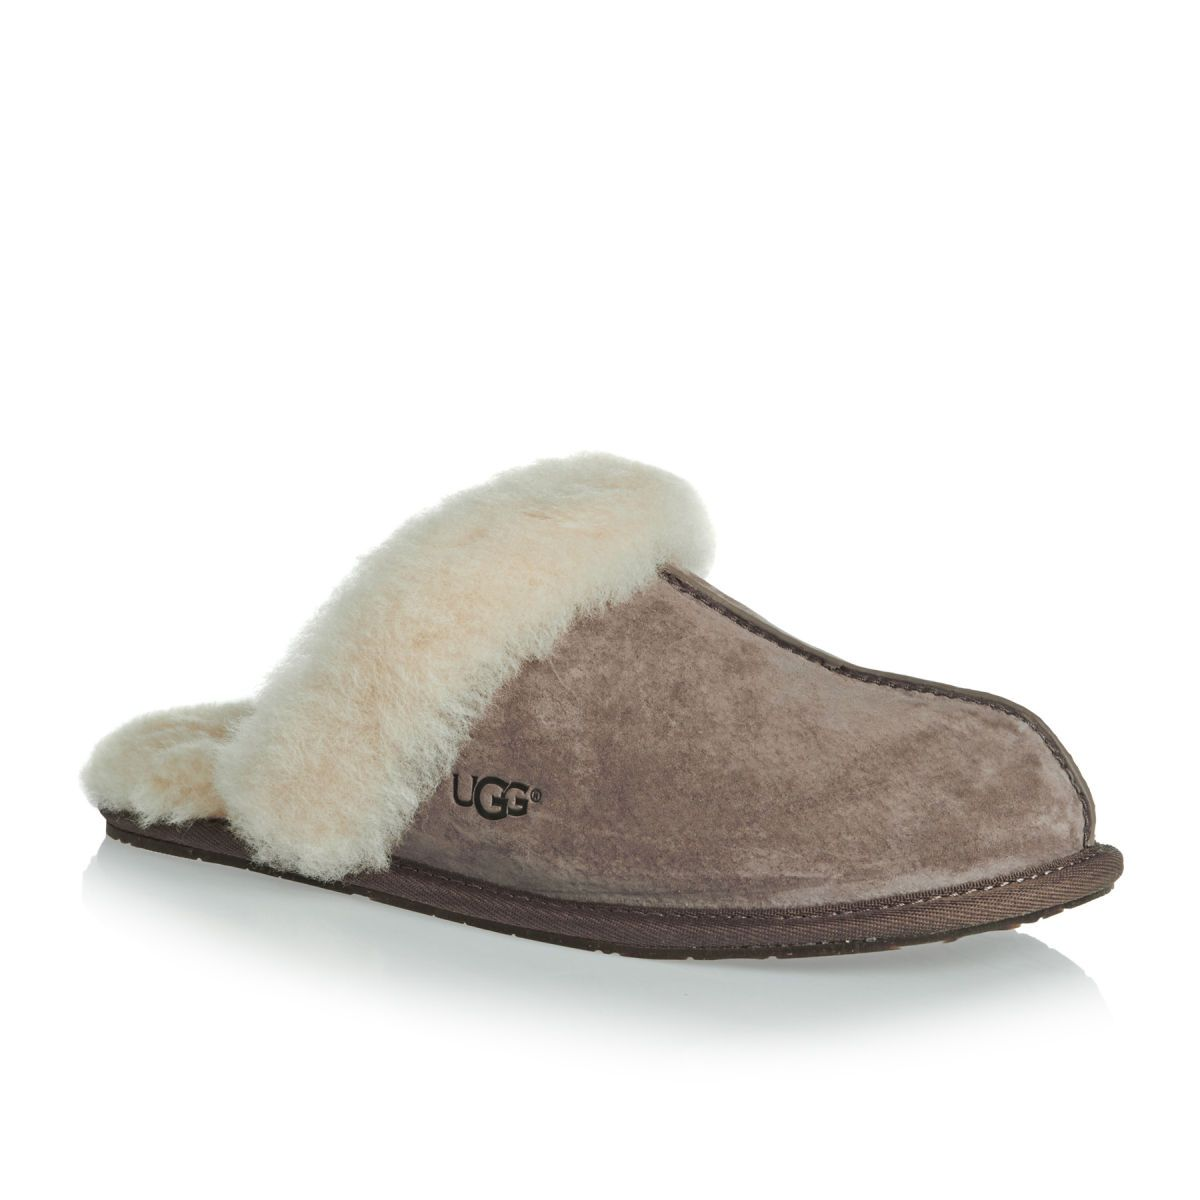 12a01cf6d UGG Slippers - UGG W Scuffette II Slipper - Stormy Grey | Everything ...